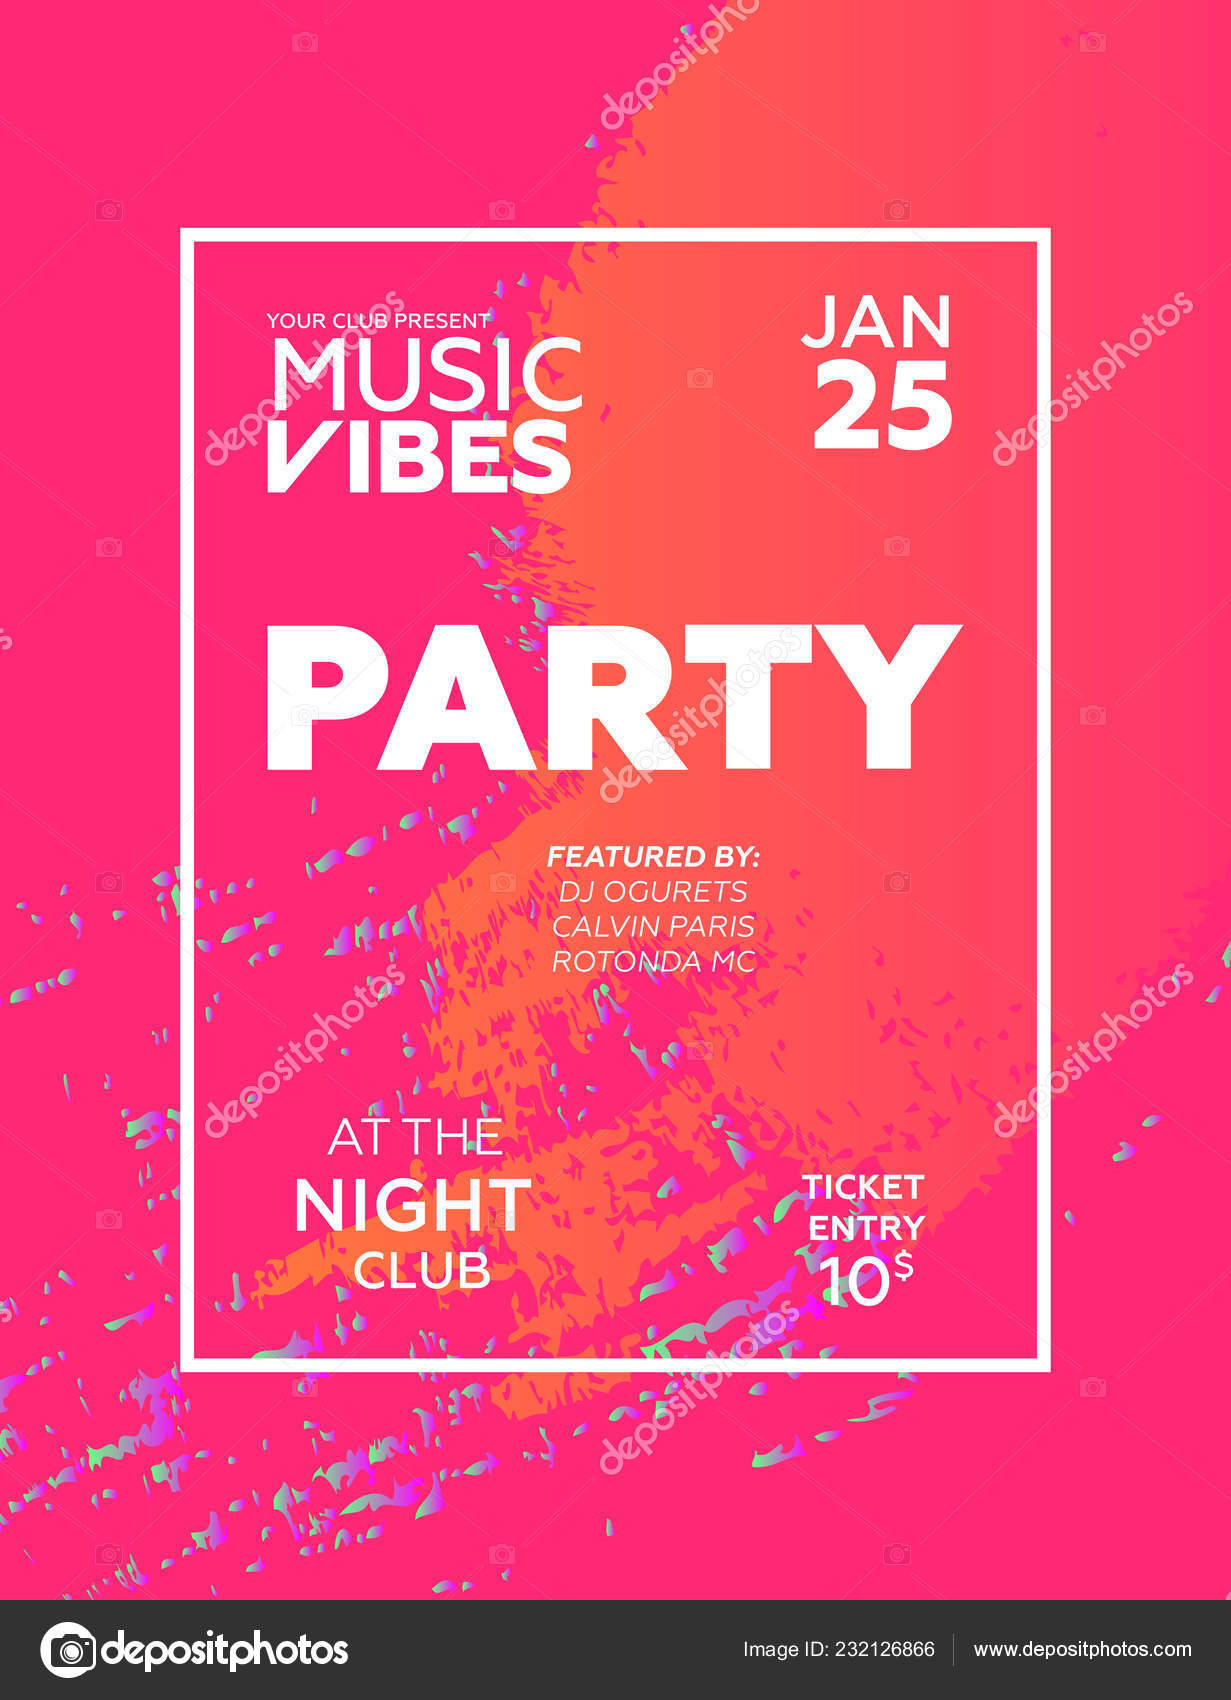 Night Party Banner Template Art Event Promotion Glowing Fiber Effect